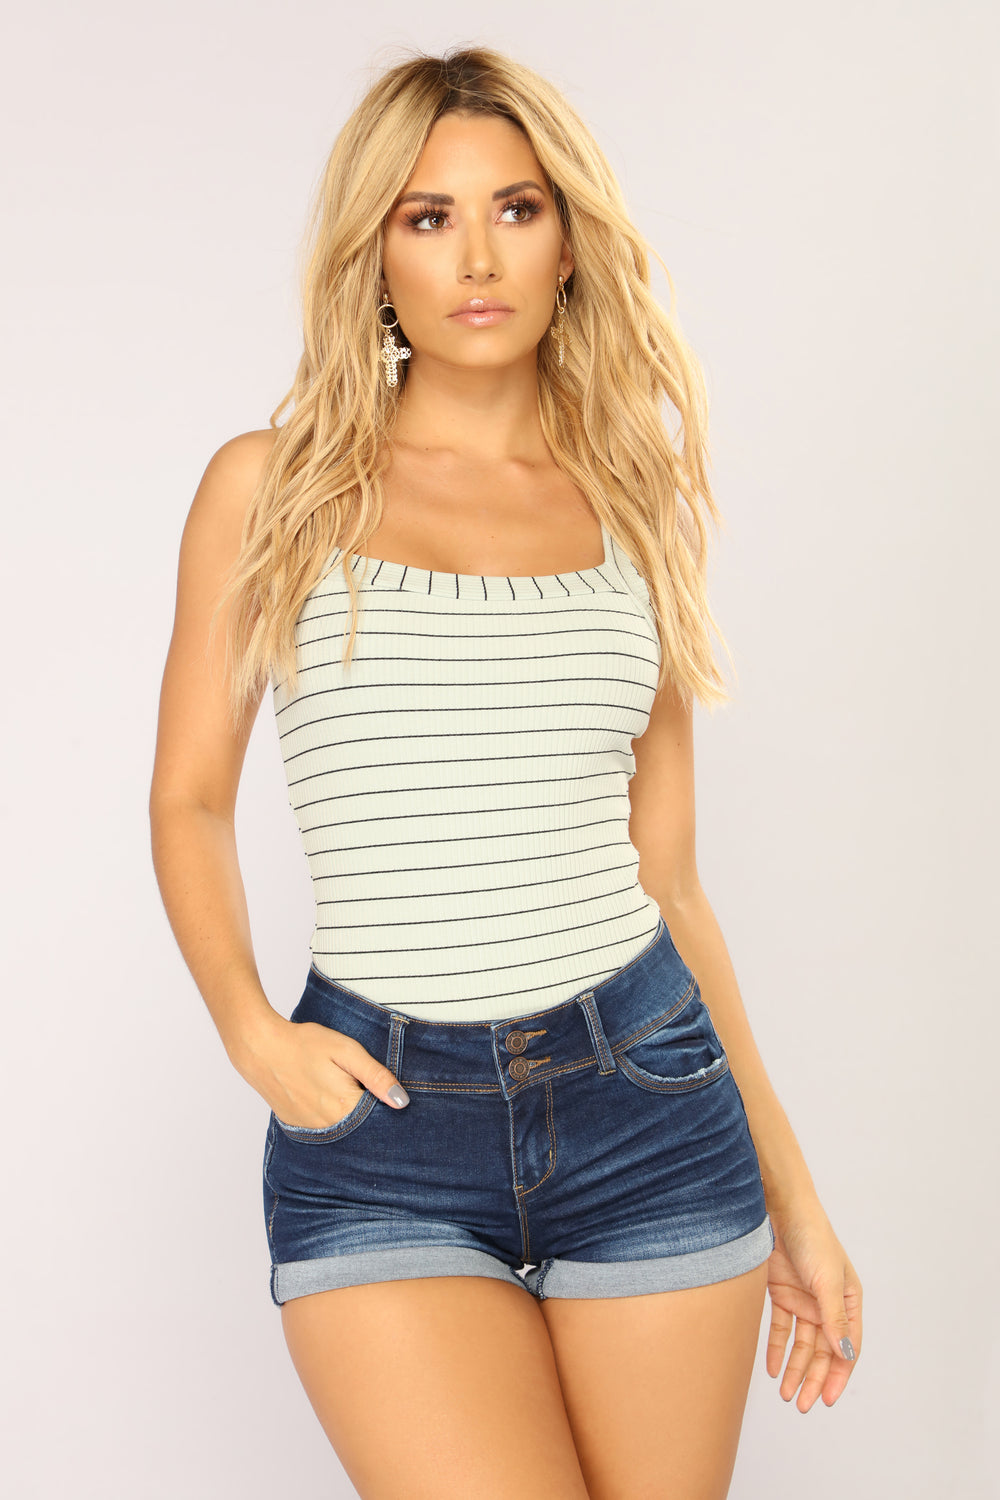 New Breed Striped Bodysuit - Sage